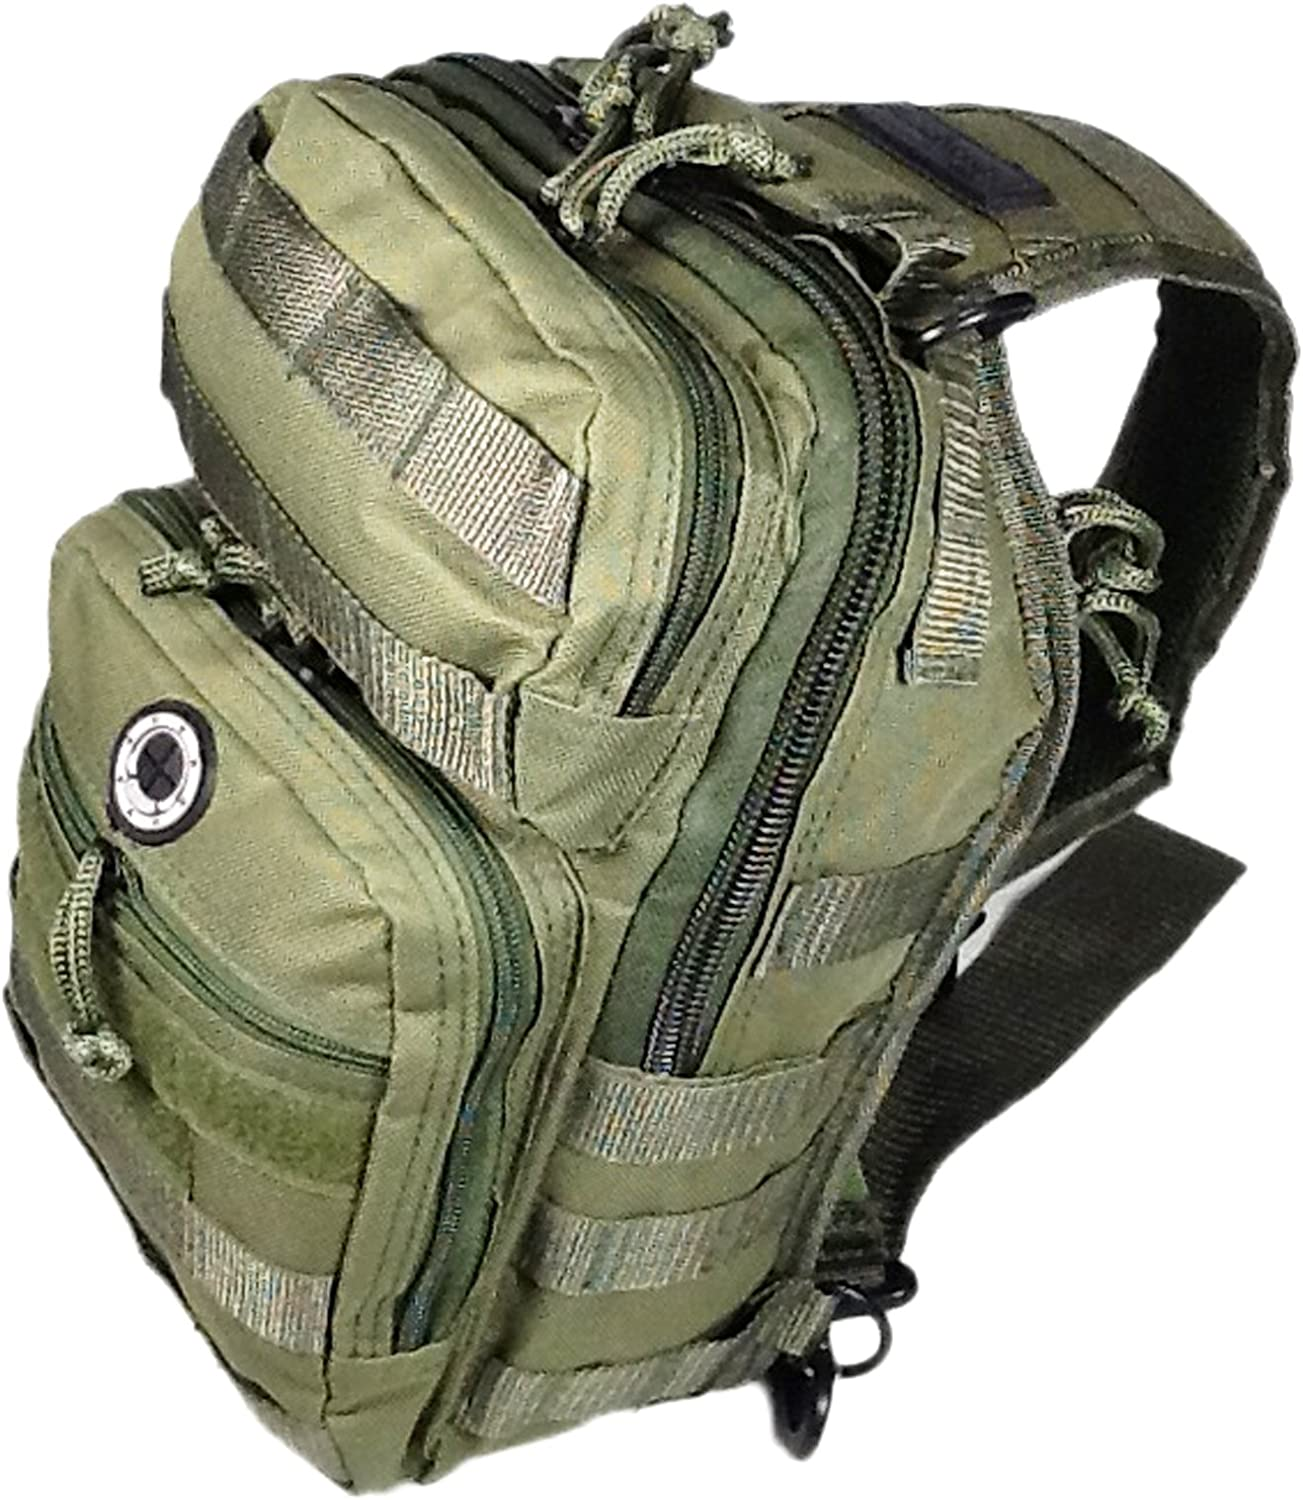 12 800cu. in. Tactical Sling Shoulder Hiking Backpack TL312 ODGN GREEN